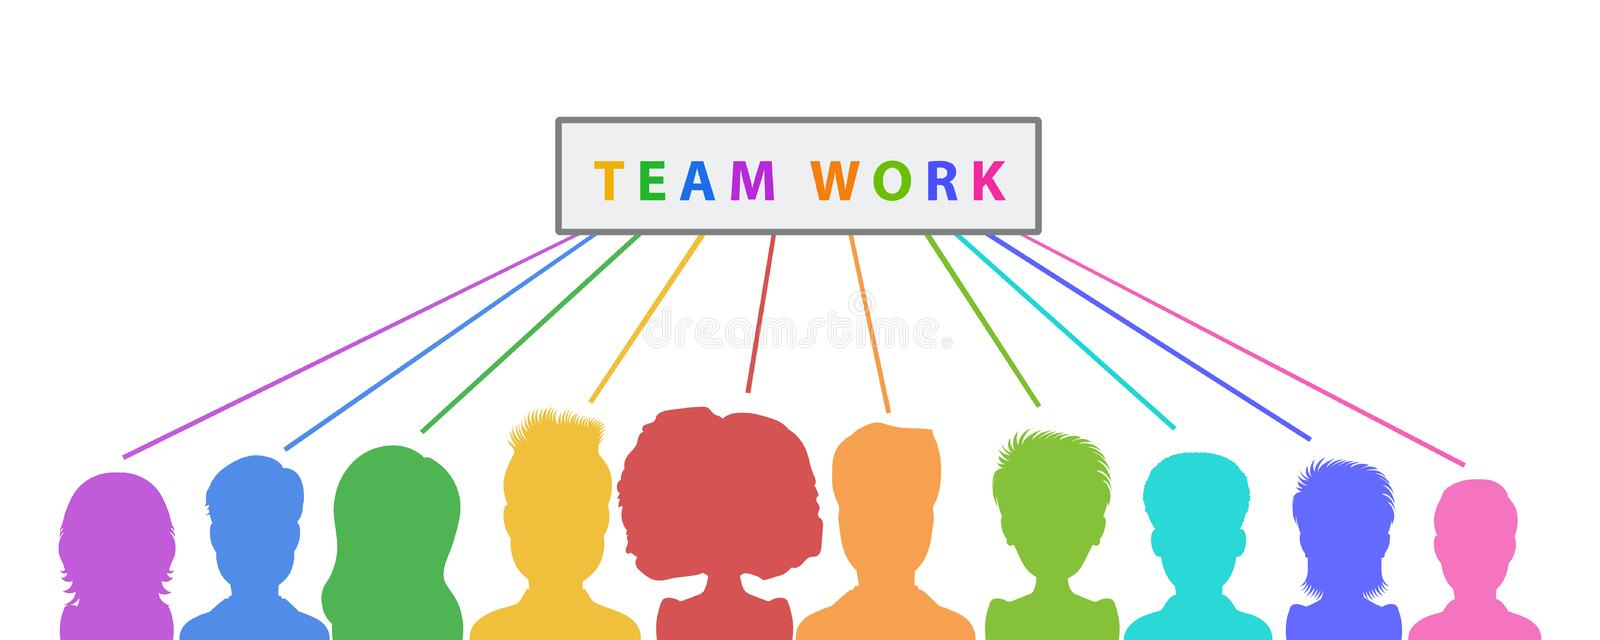 Teamwork banner design, collaboration abstract business concept. Flat style vector vector illustration